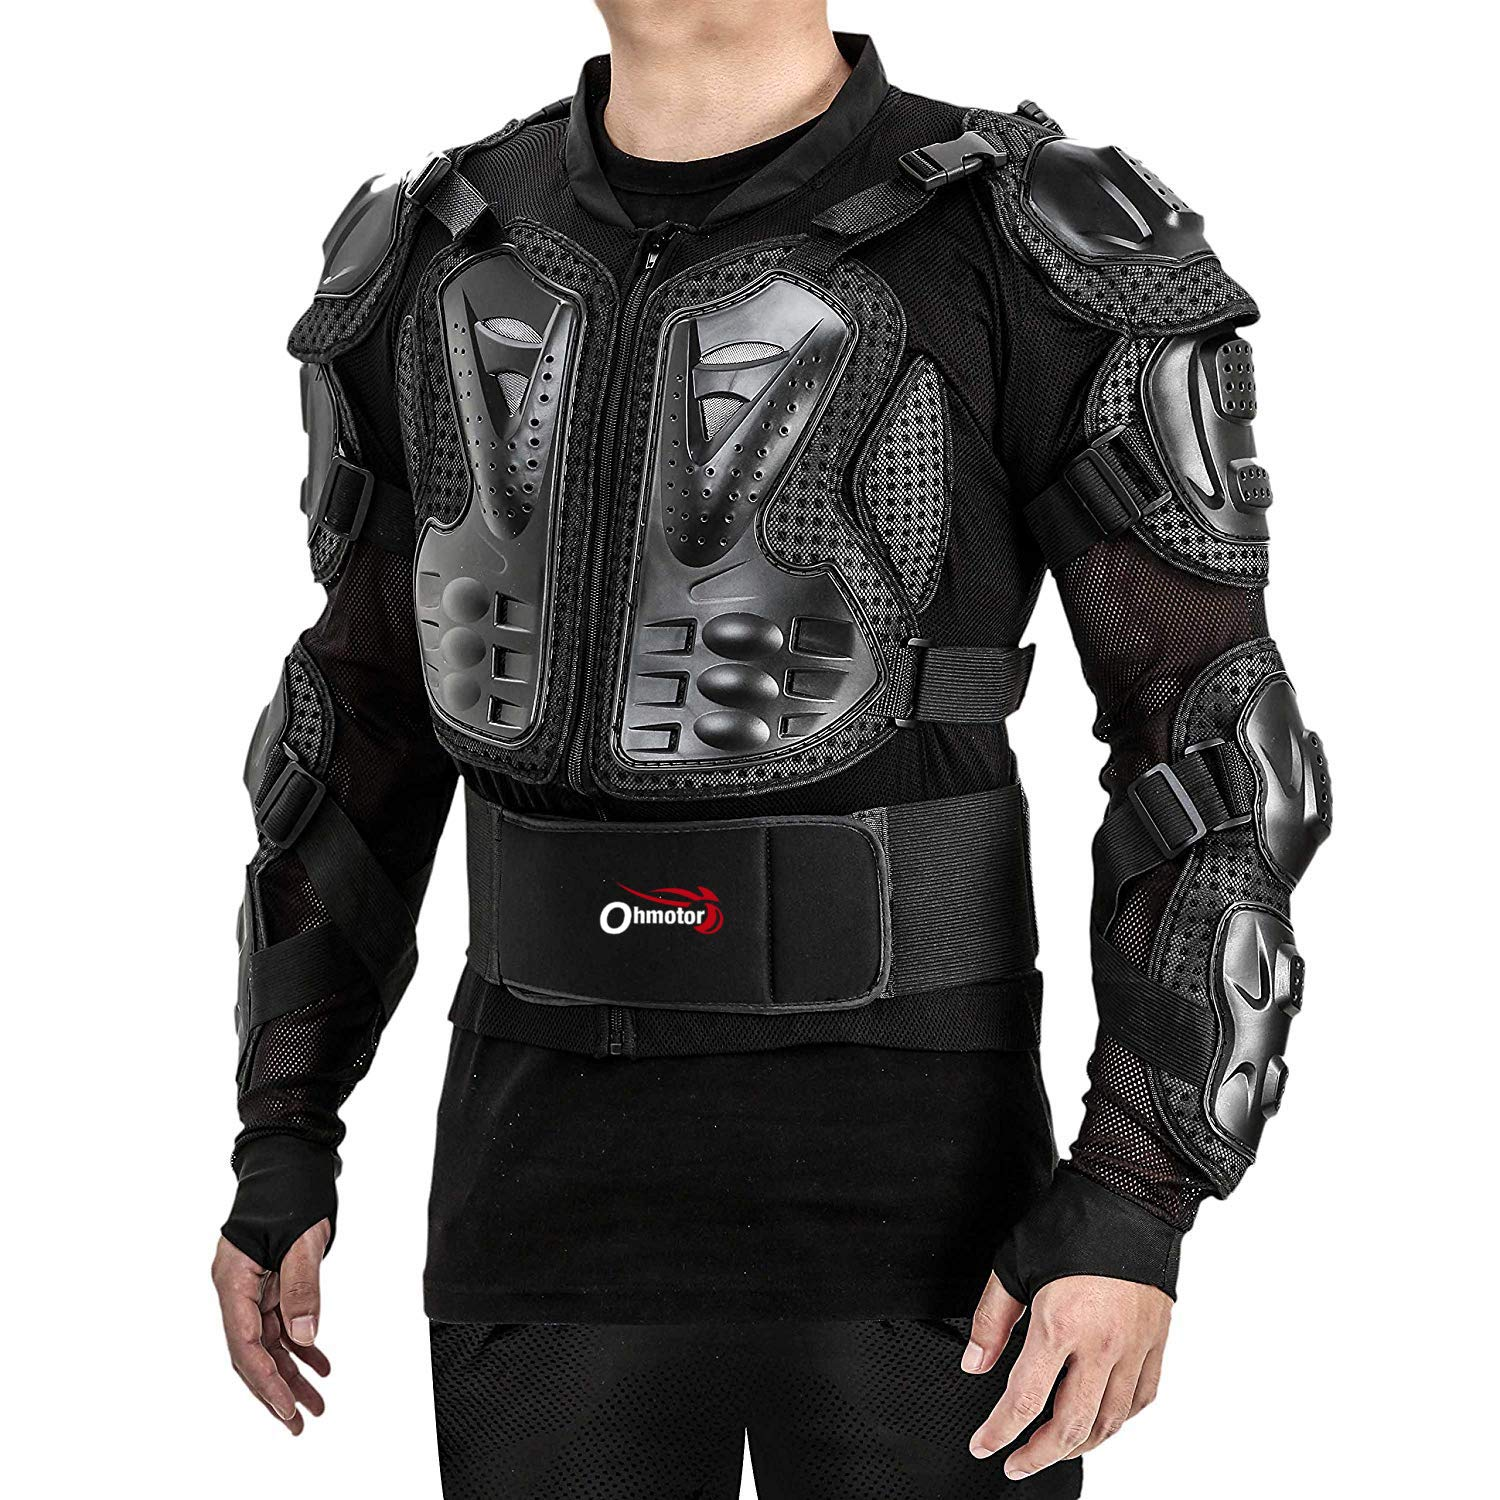 OHMOTOR Motorcycle Motorbike Full Body Armor Protector Pro Street Motocross ATV Guard Shirt Jacket with Back Protection Red, M